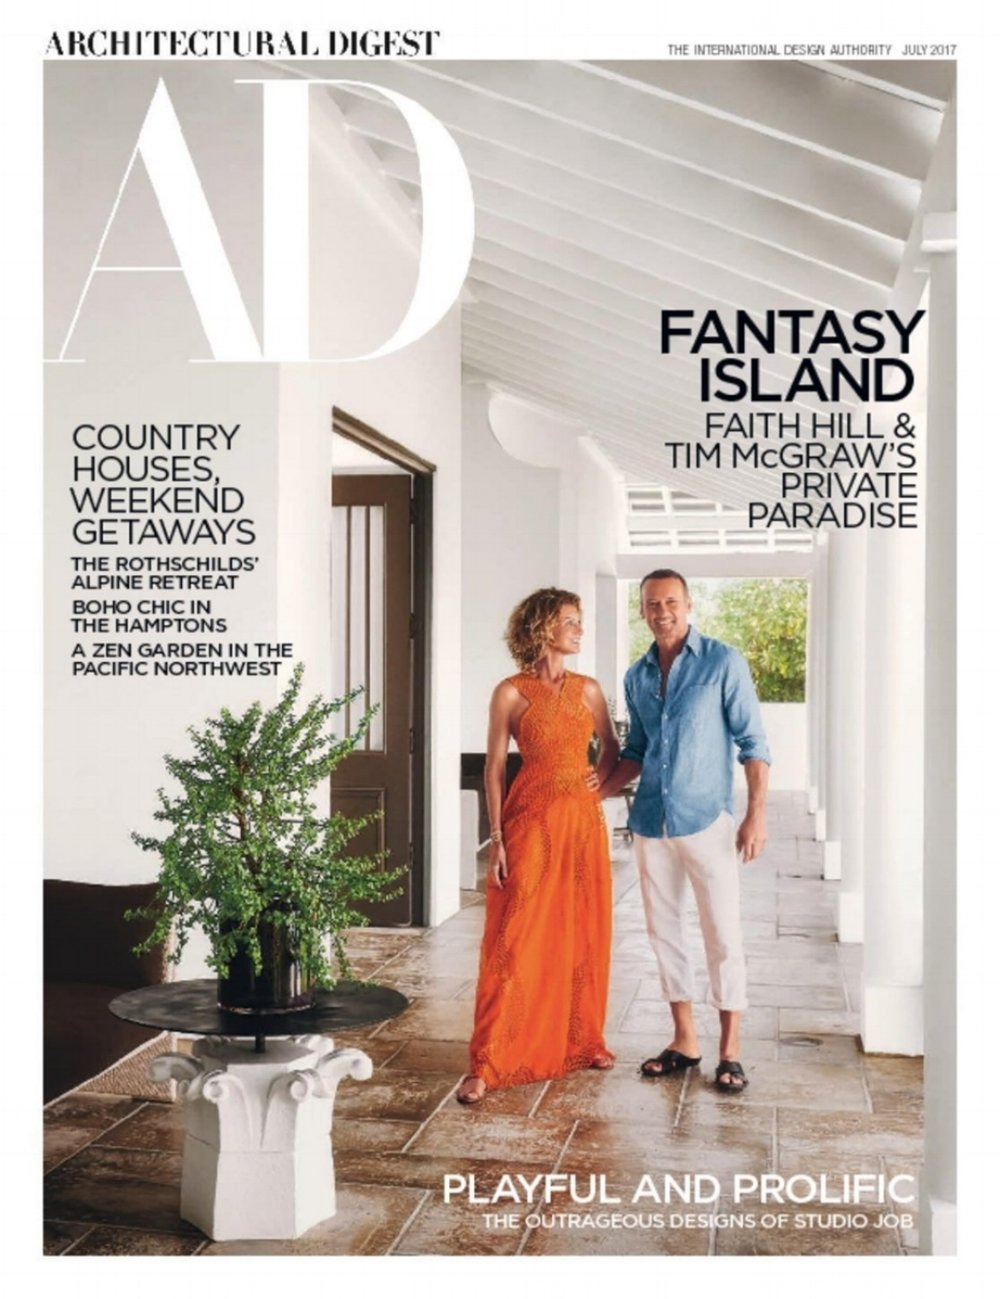 4313-architectural-digest-Cover-2017-July-1-Issue.jpg